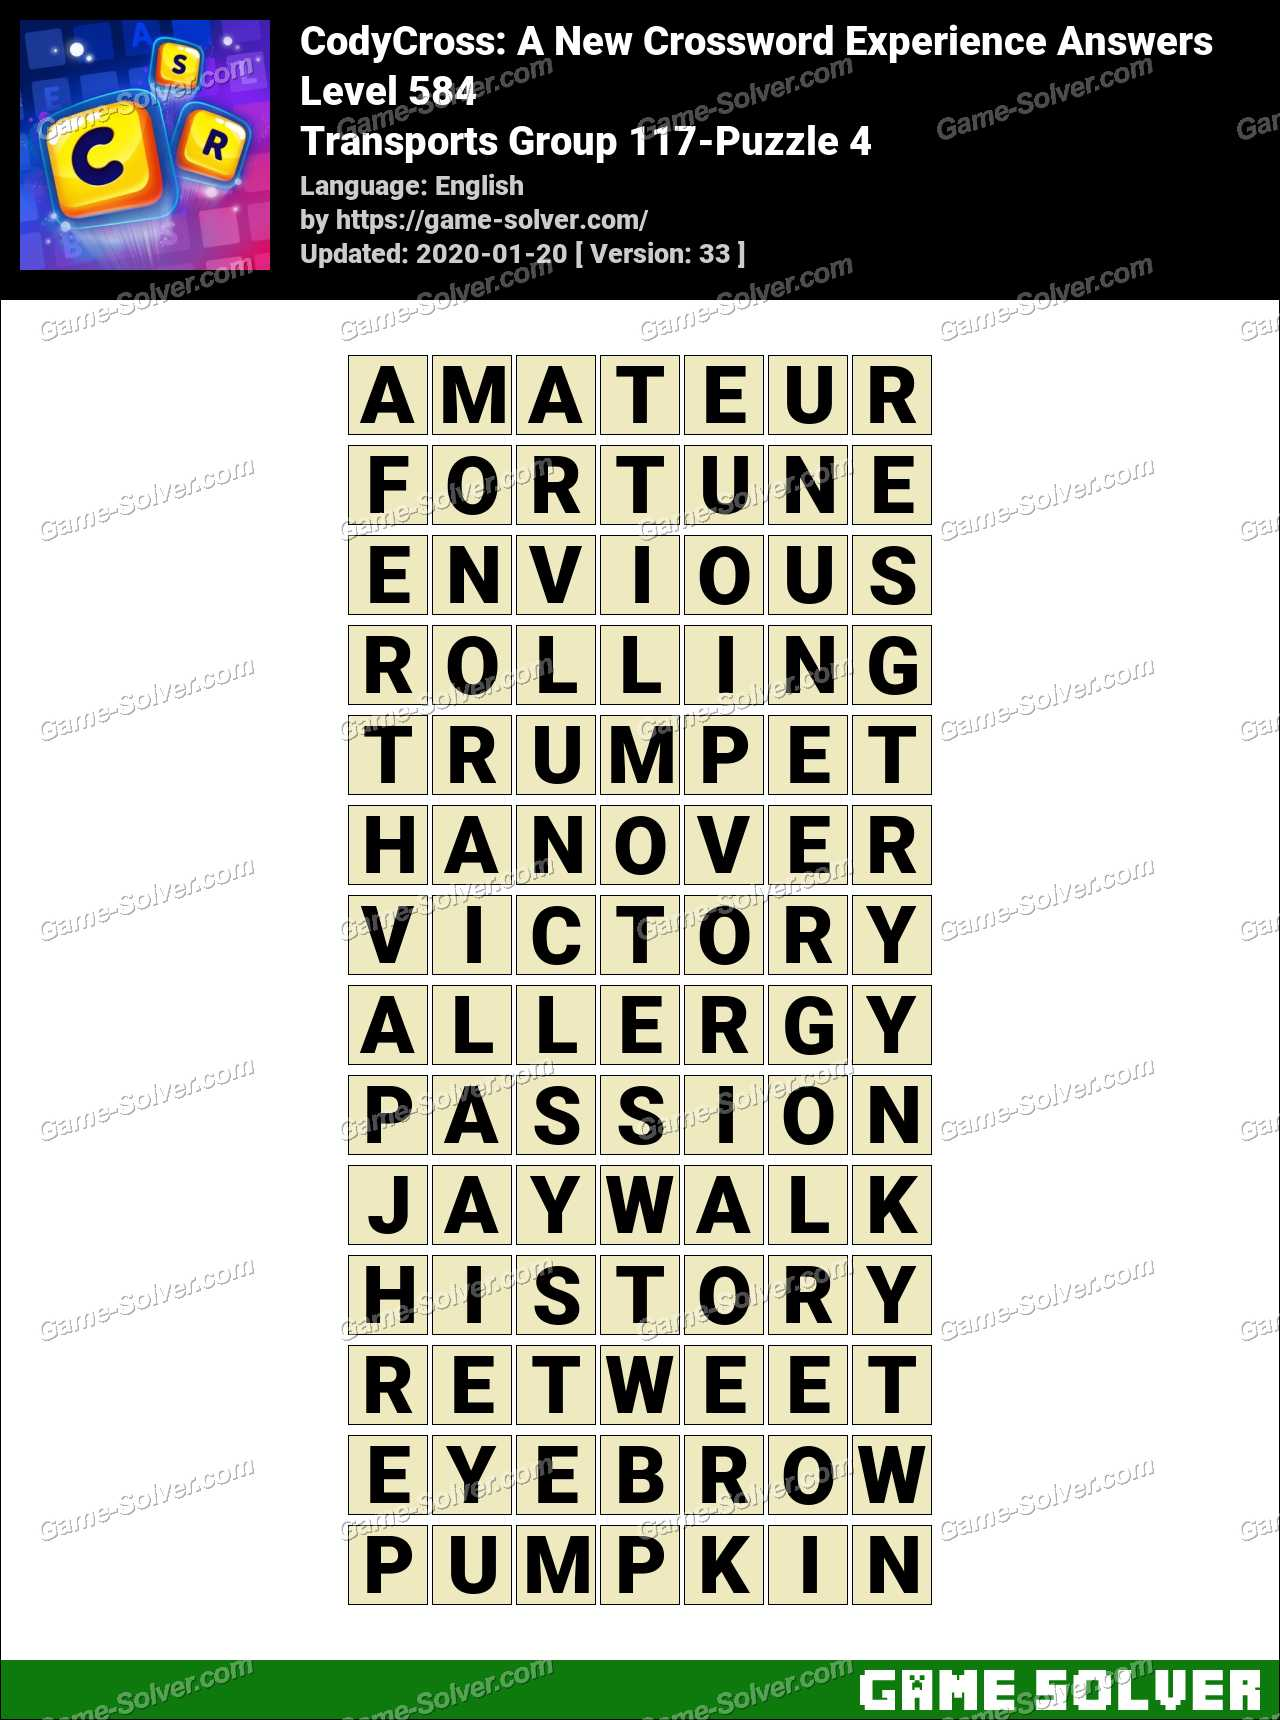 CodyCross Transports Group 117-Puzzle 4 Answers